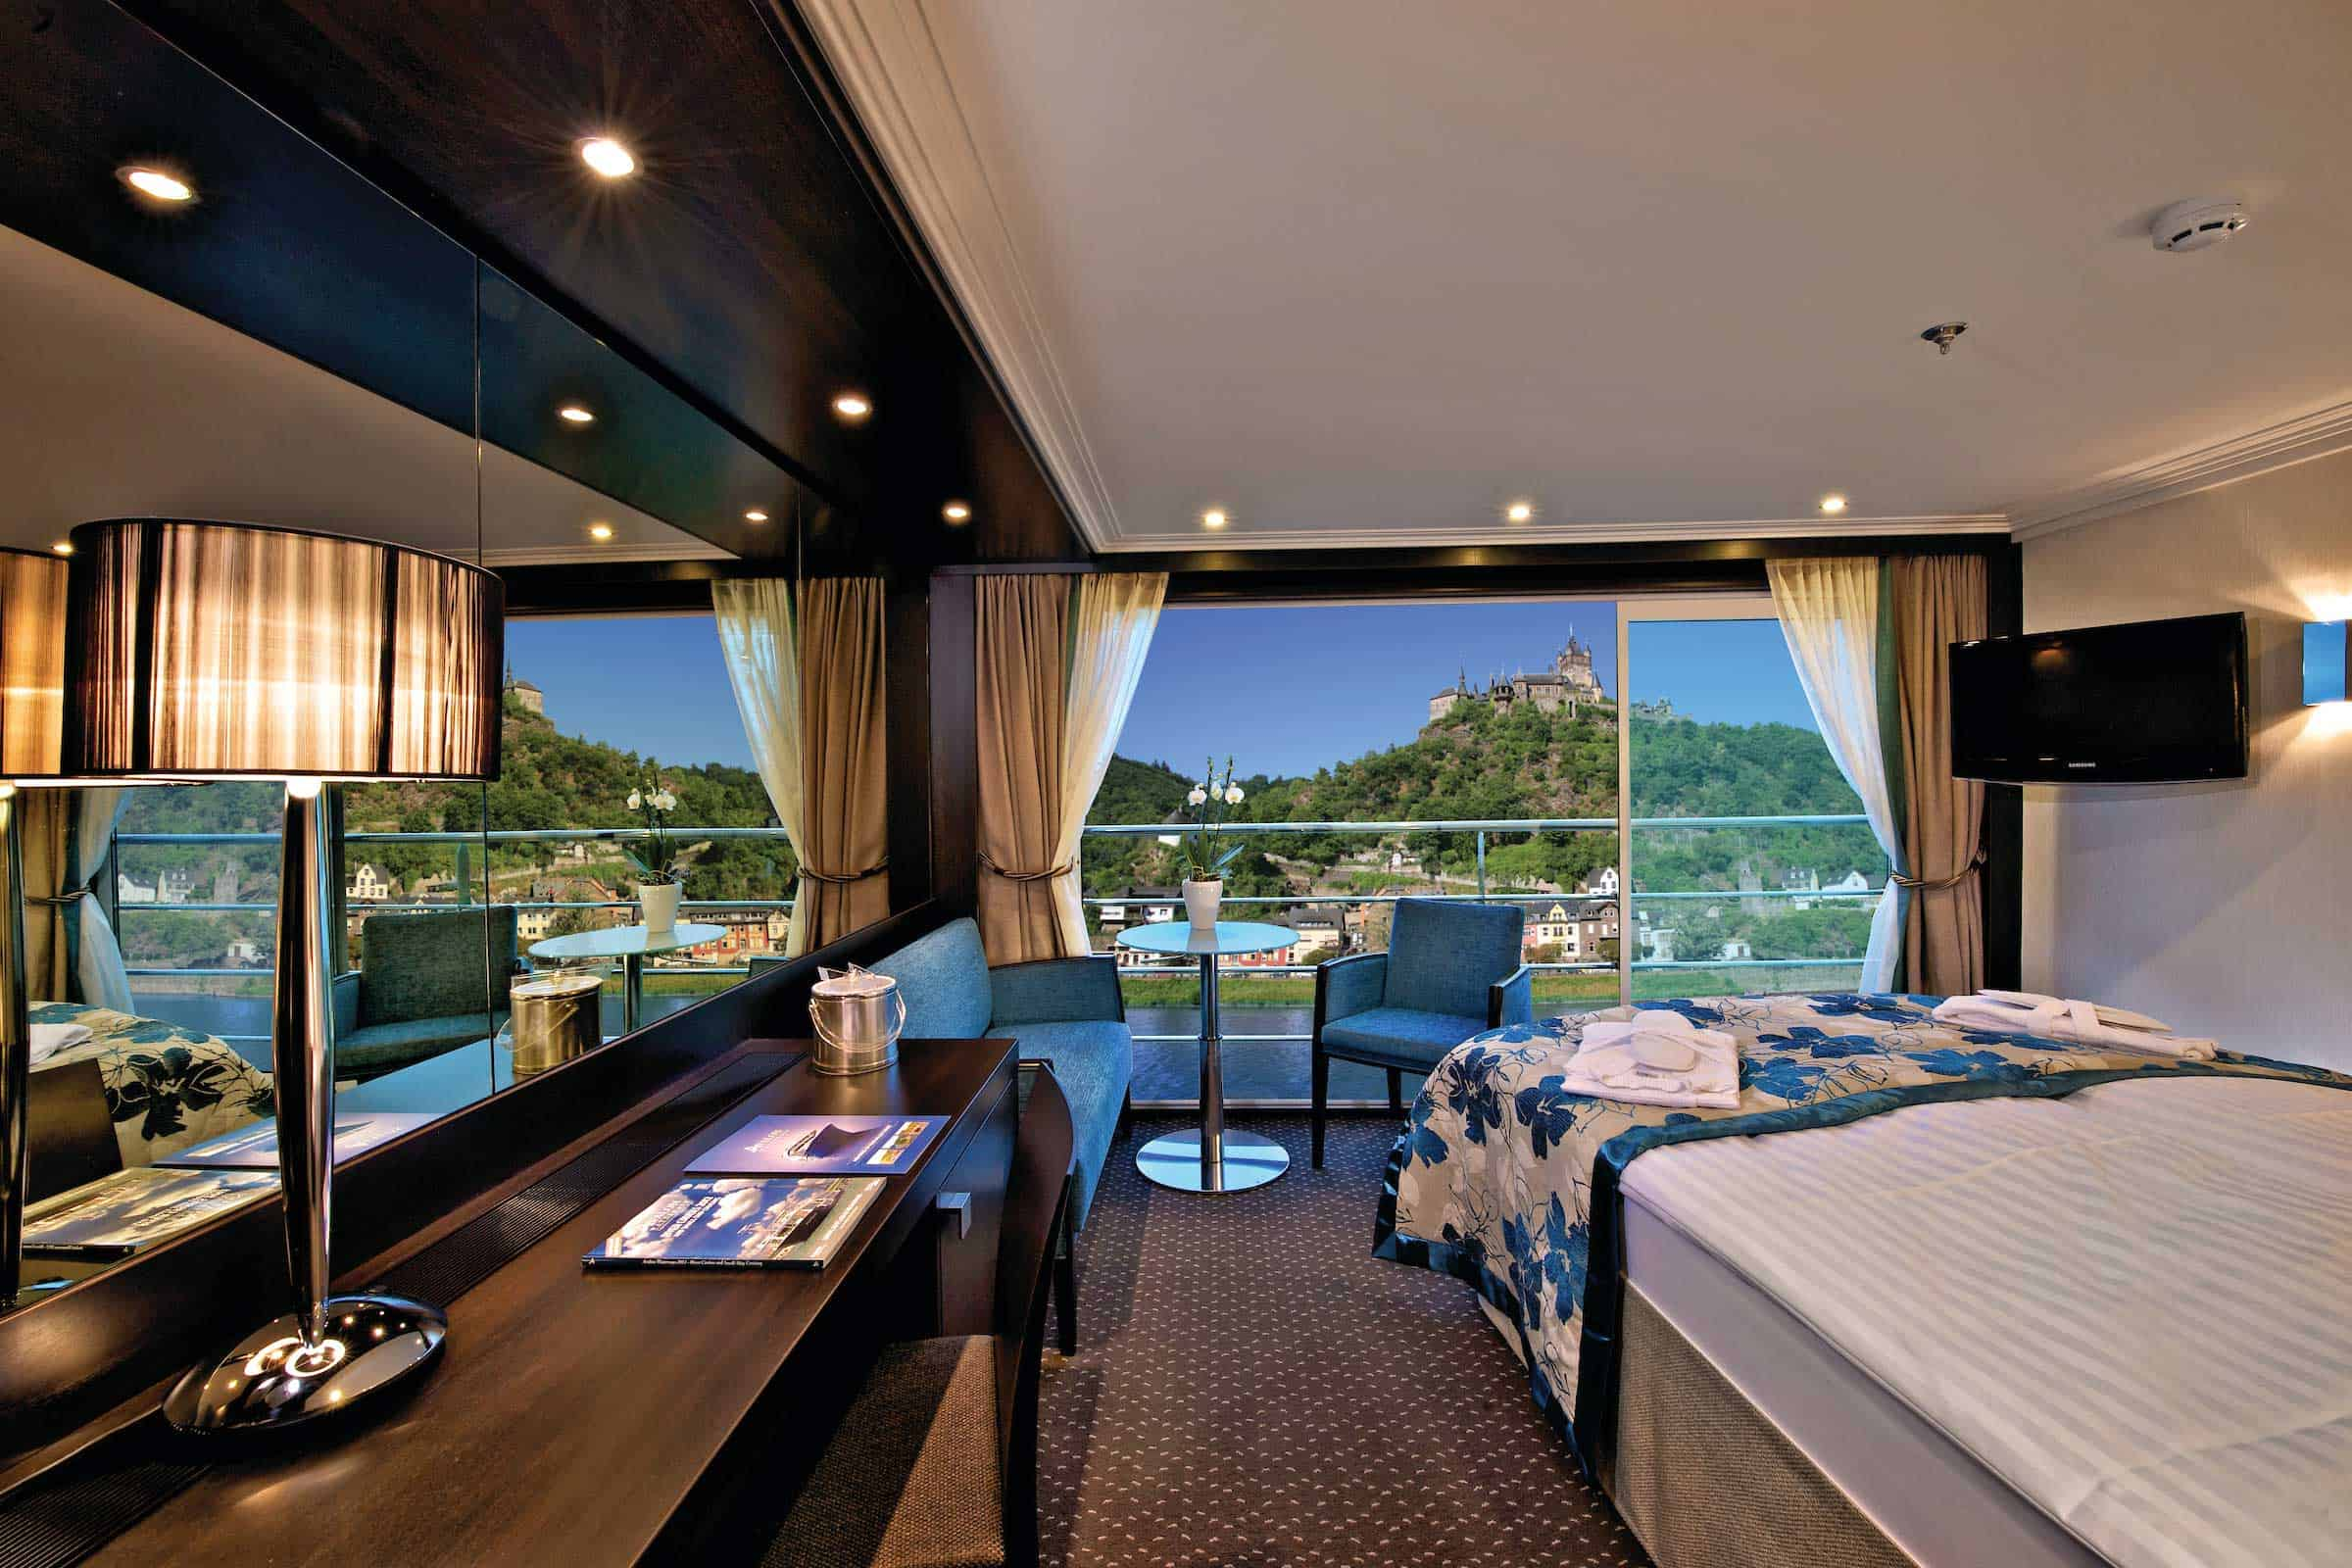 Luxurious cruise ship cabin with balcony.